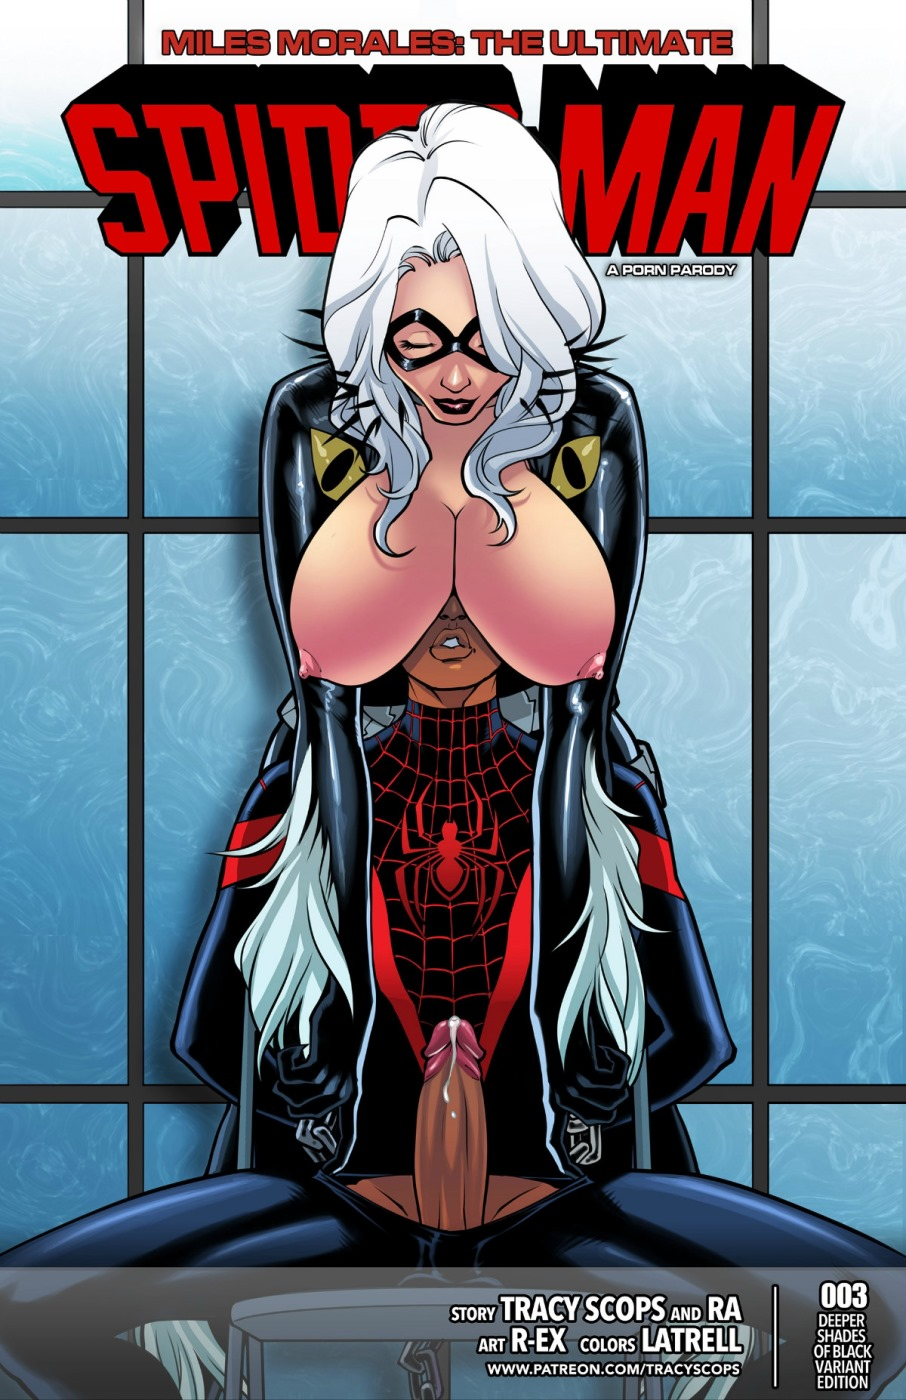 Miles Morales- Ultimate Spider-Man 3 porn comics 8 muses